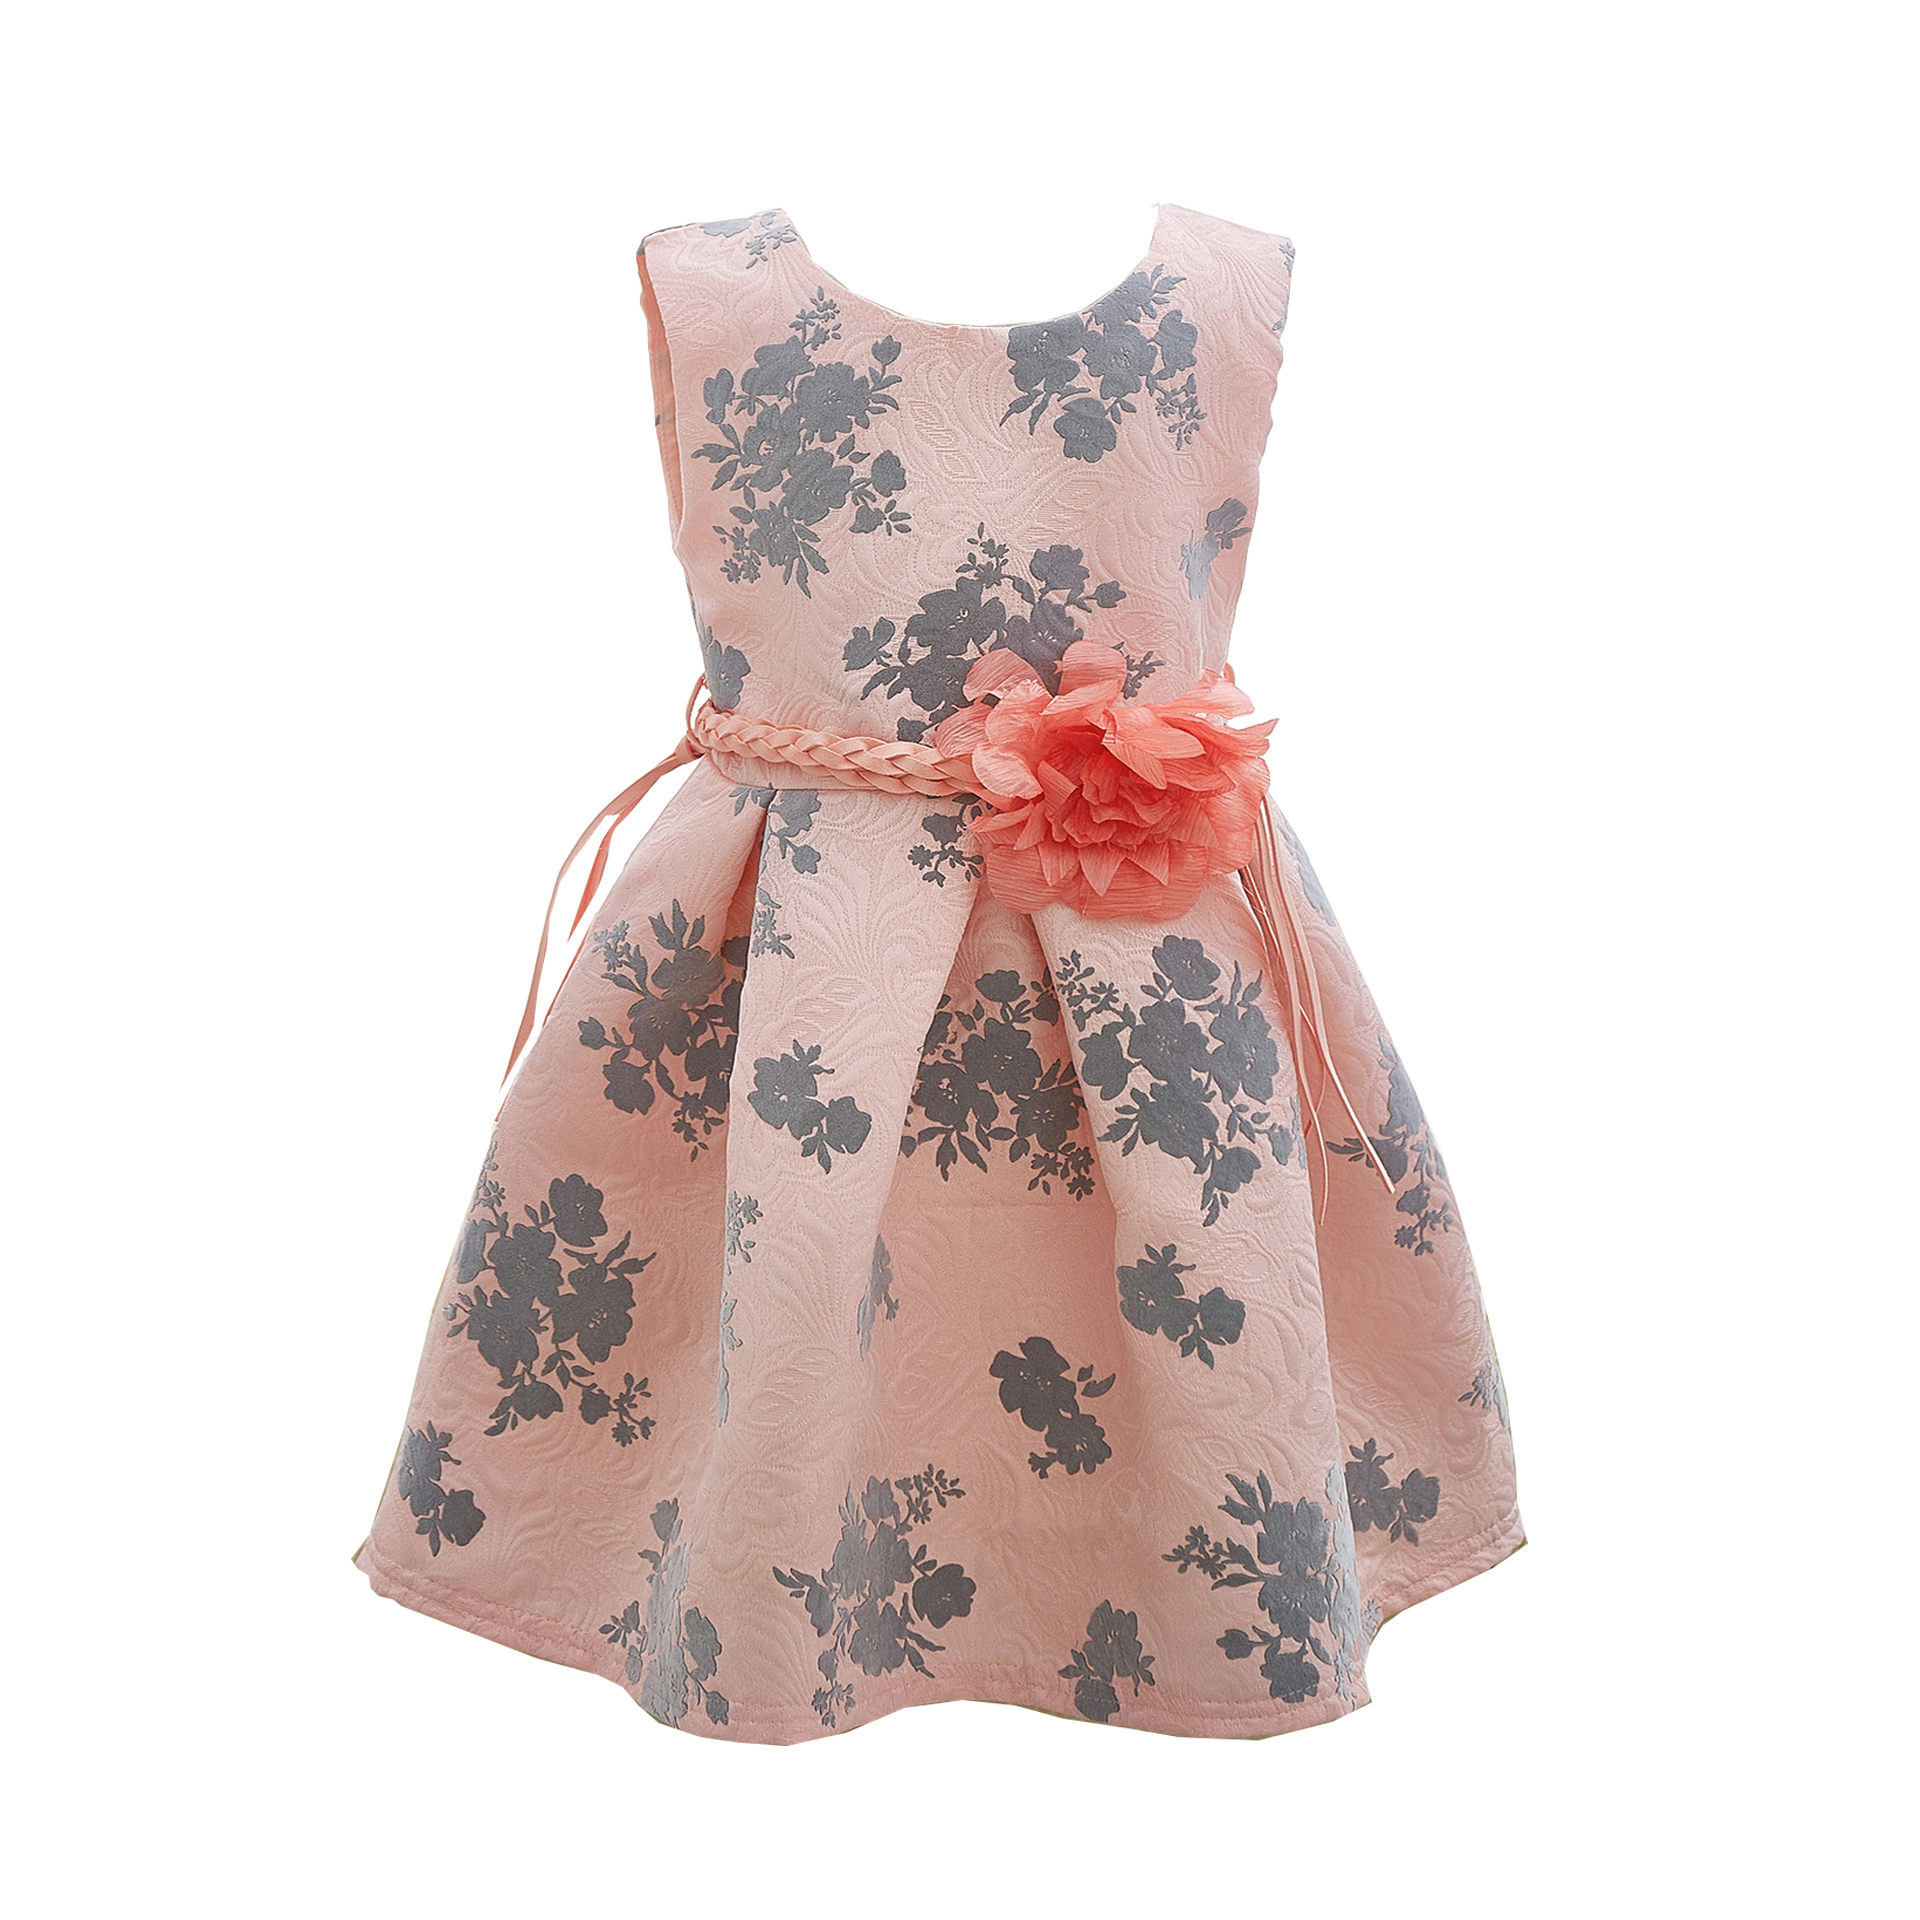 Party girls dresses japan flowergirl dress suppliers with best service good price